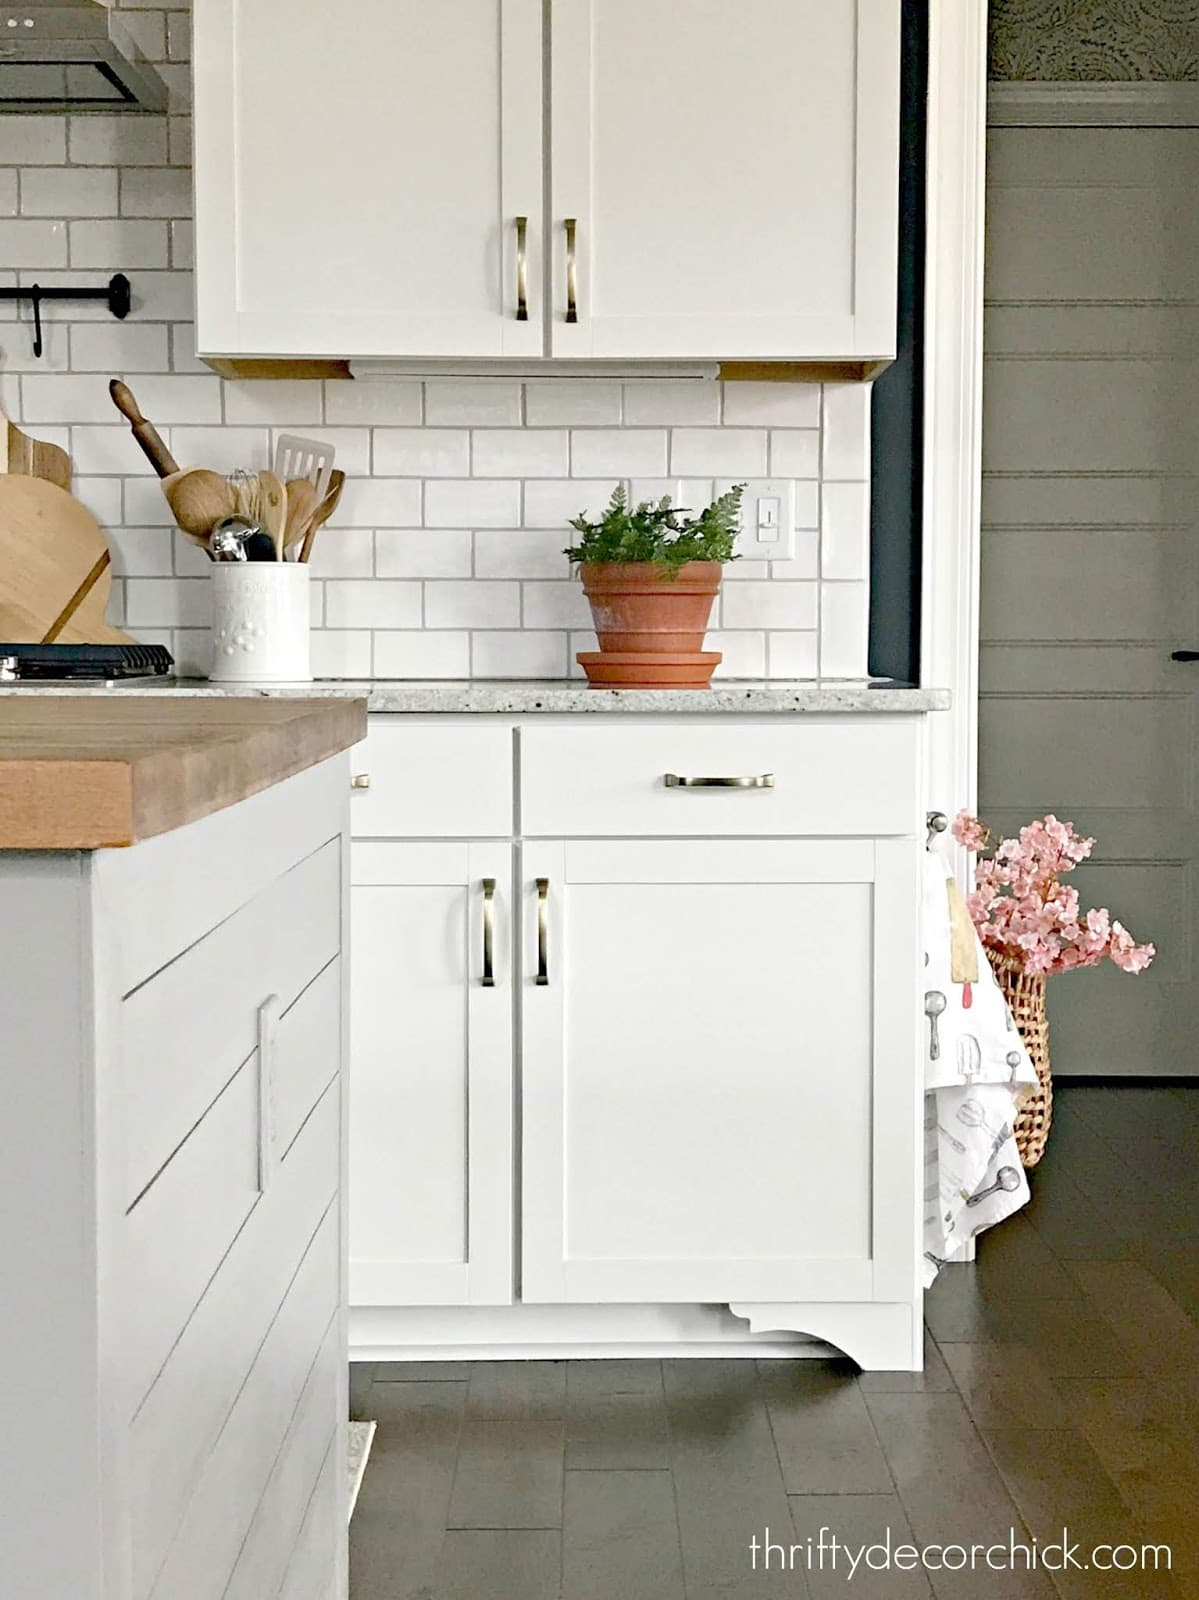 Adding feet to kitchen base cabinets elevates the look of stock cabinets